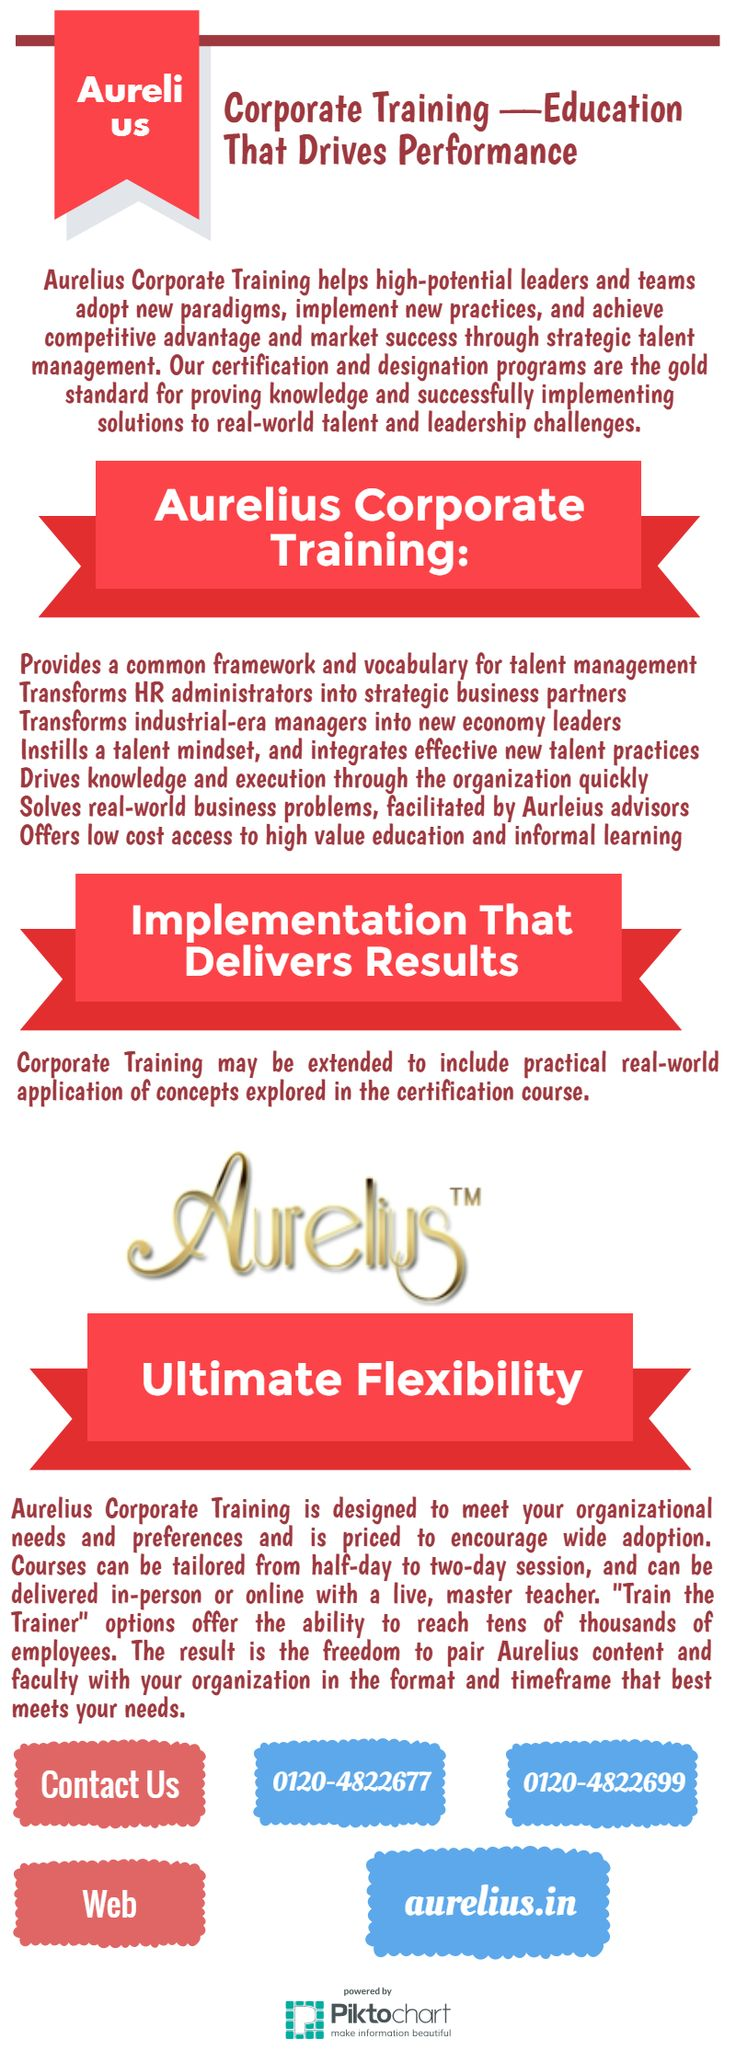 28 best best corporate training companies in india images on aurelius corporate training helps high potential leaders and teams adopt new paradigms implement new 1betcityfo Gallery